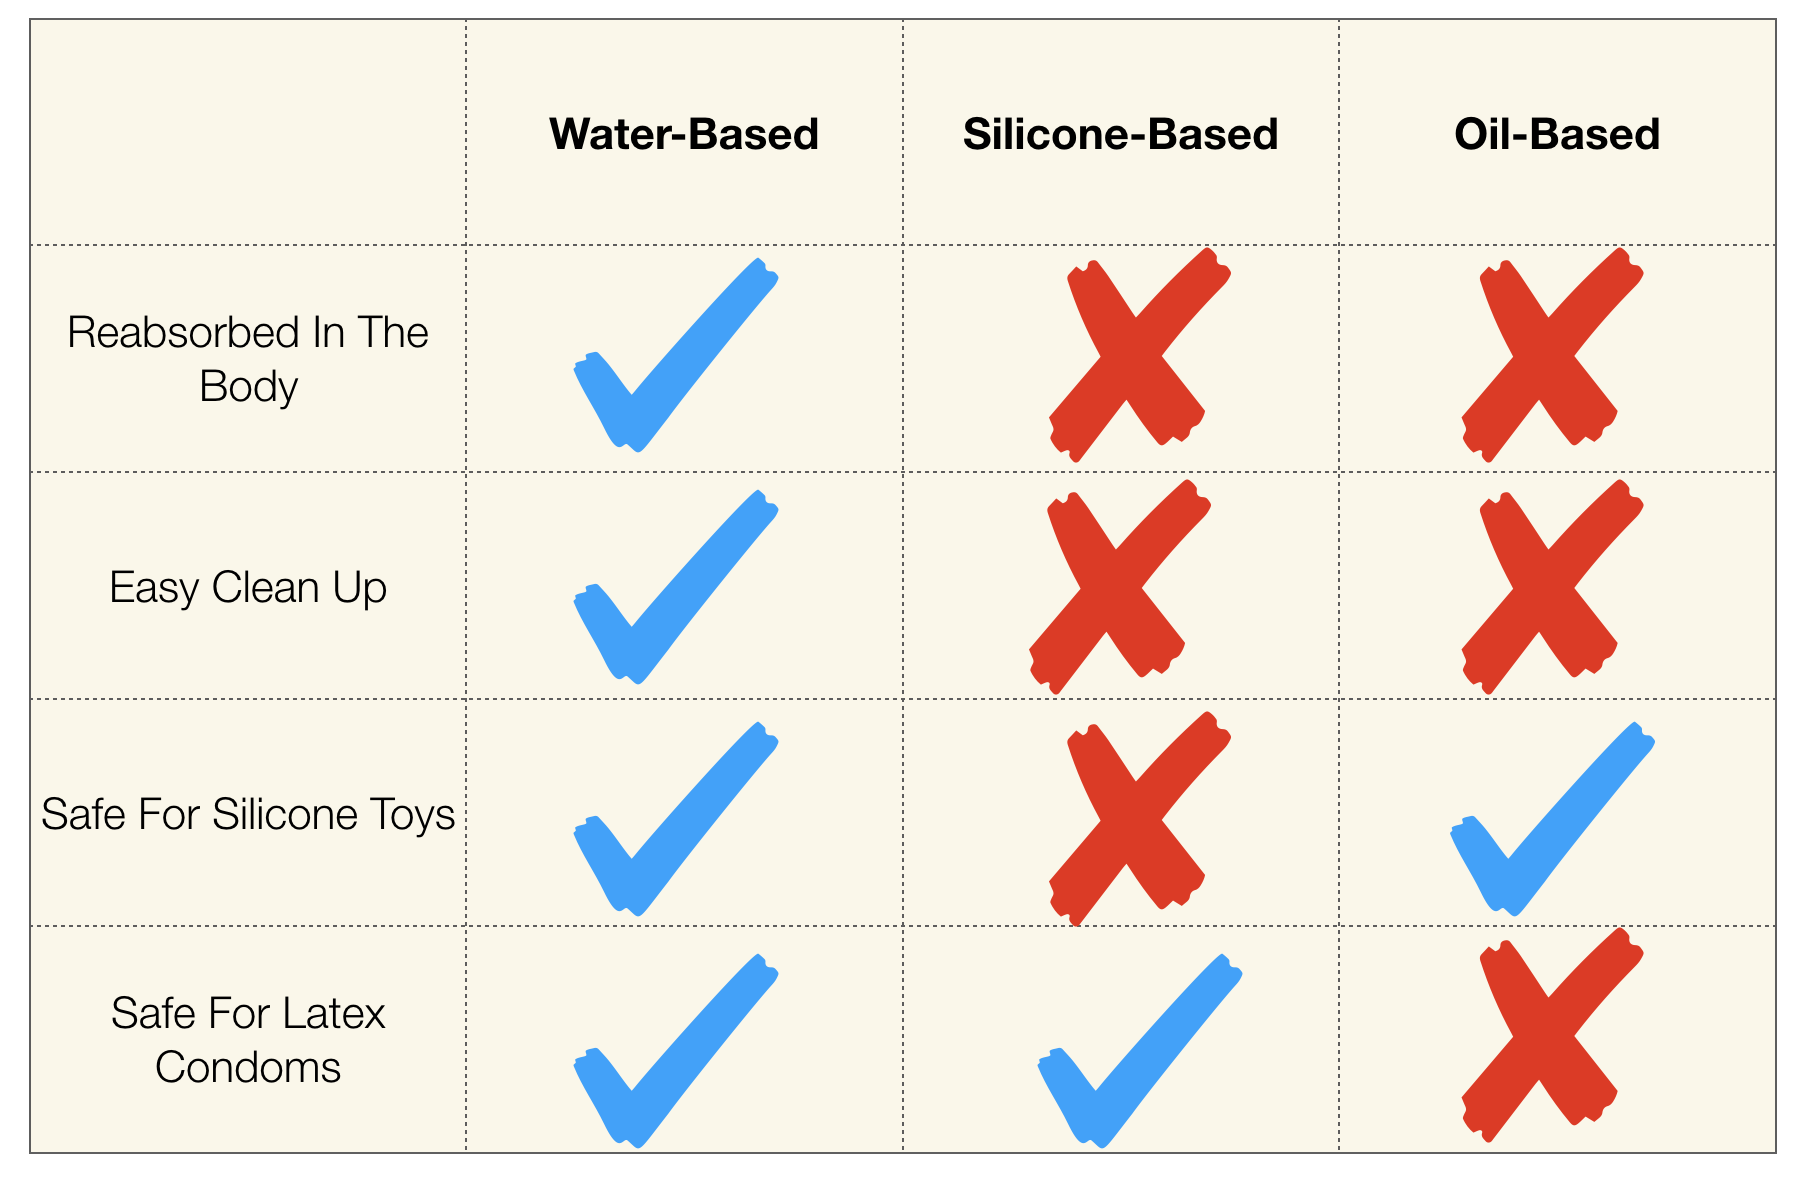 A chart outlining the attributes of water-, silicone-, and oil-based lubricants.